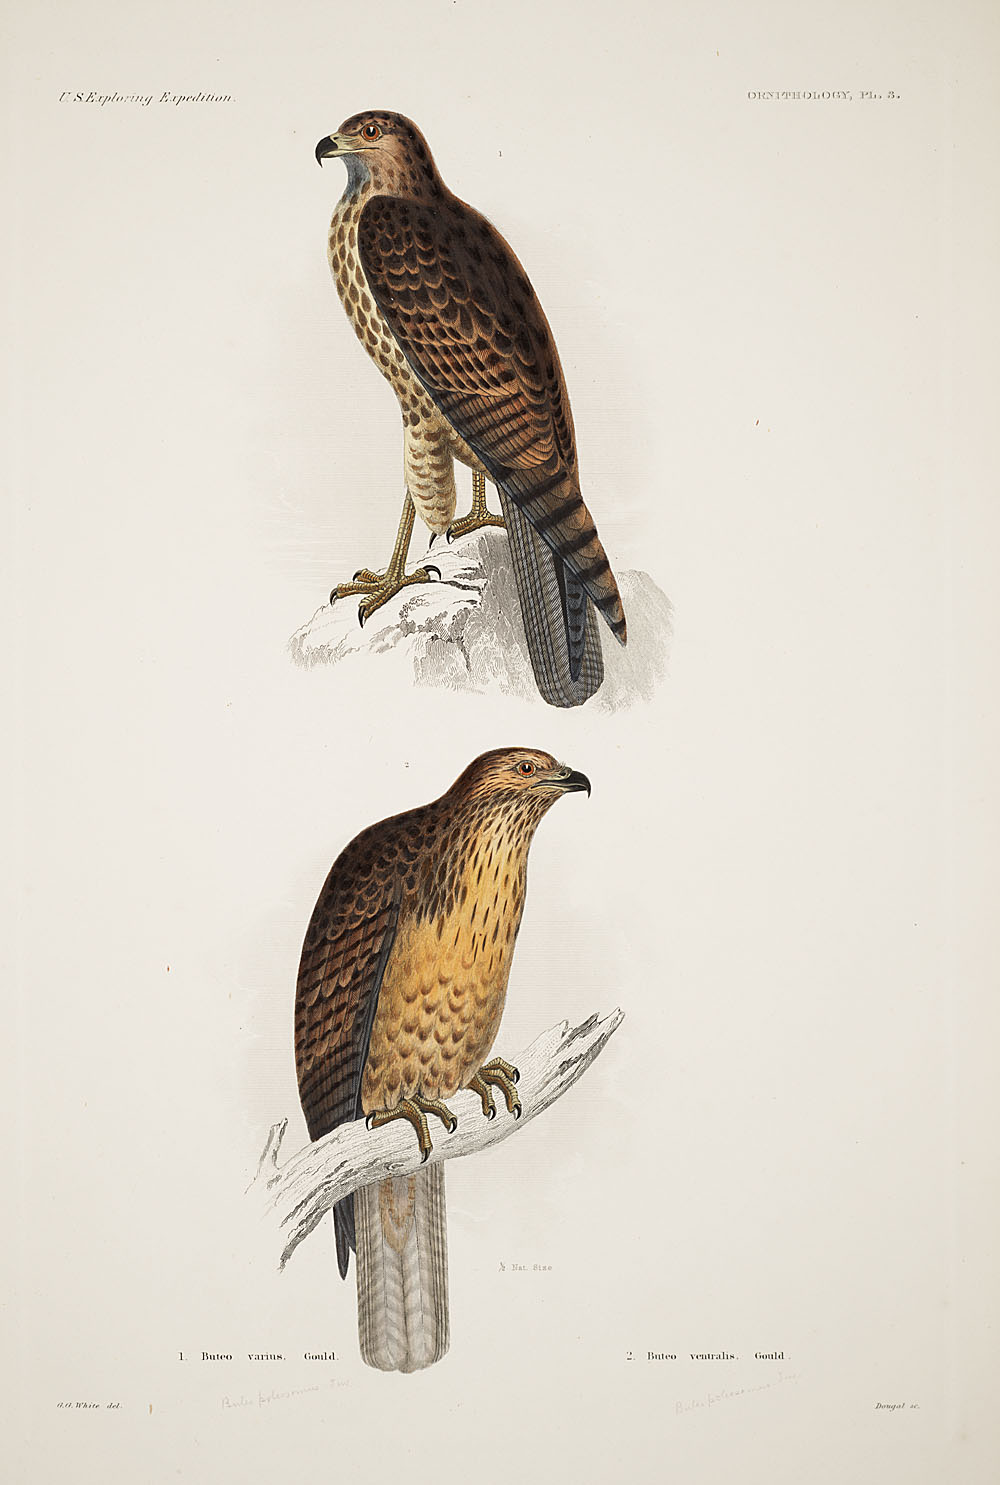 Ornithology, Pl. 3,  Image number:sil19-12-037b